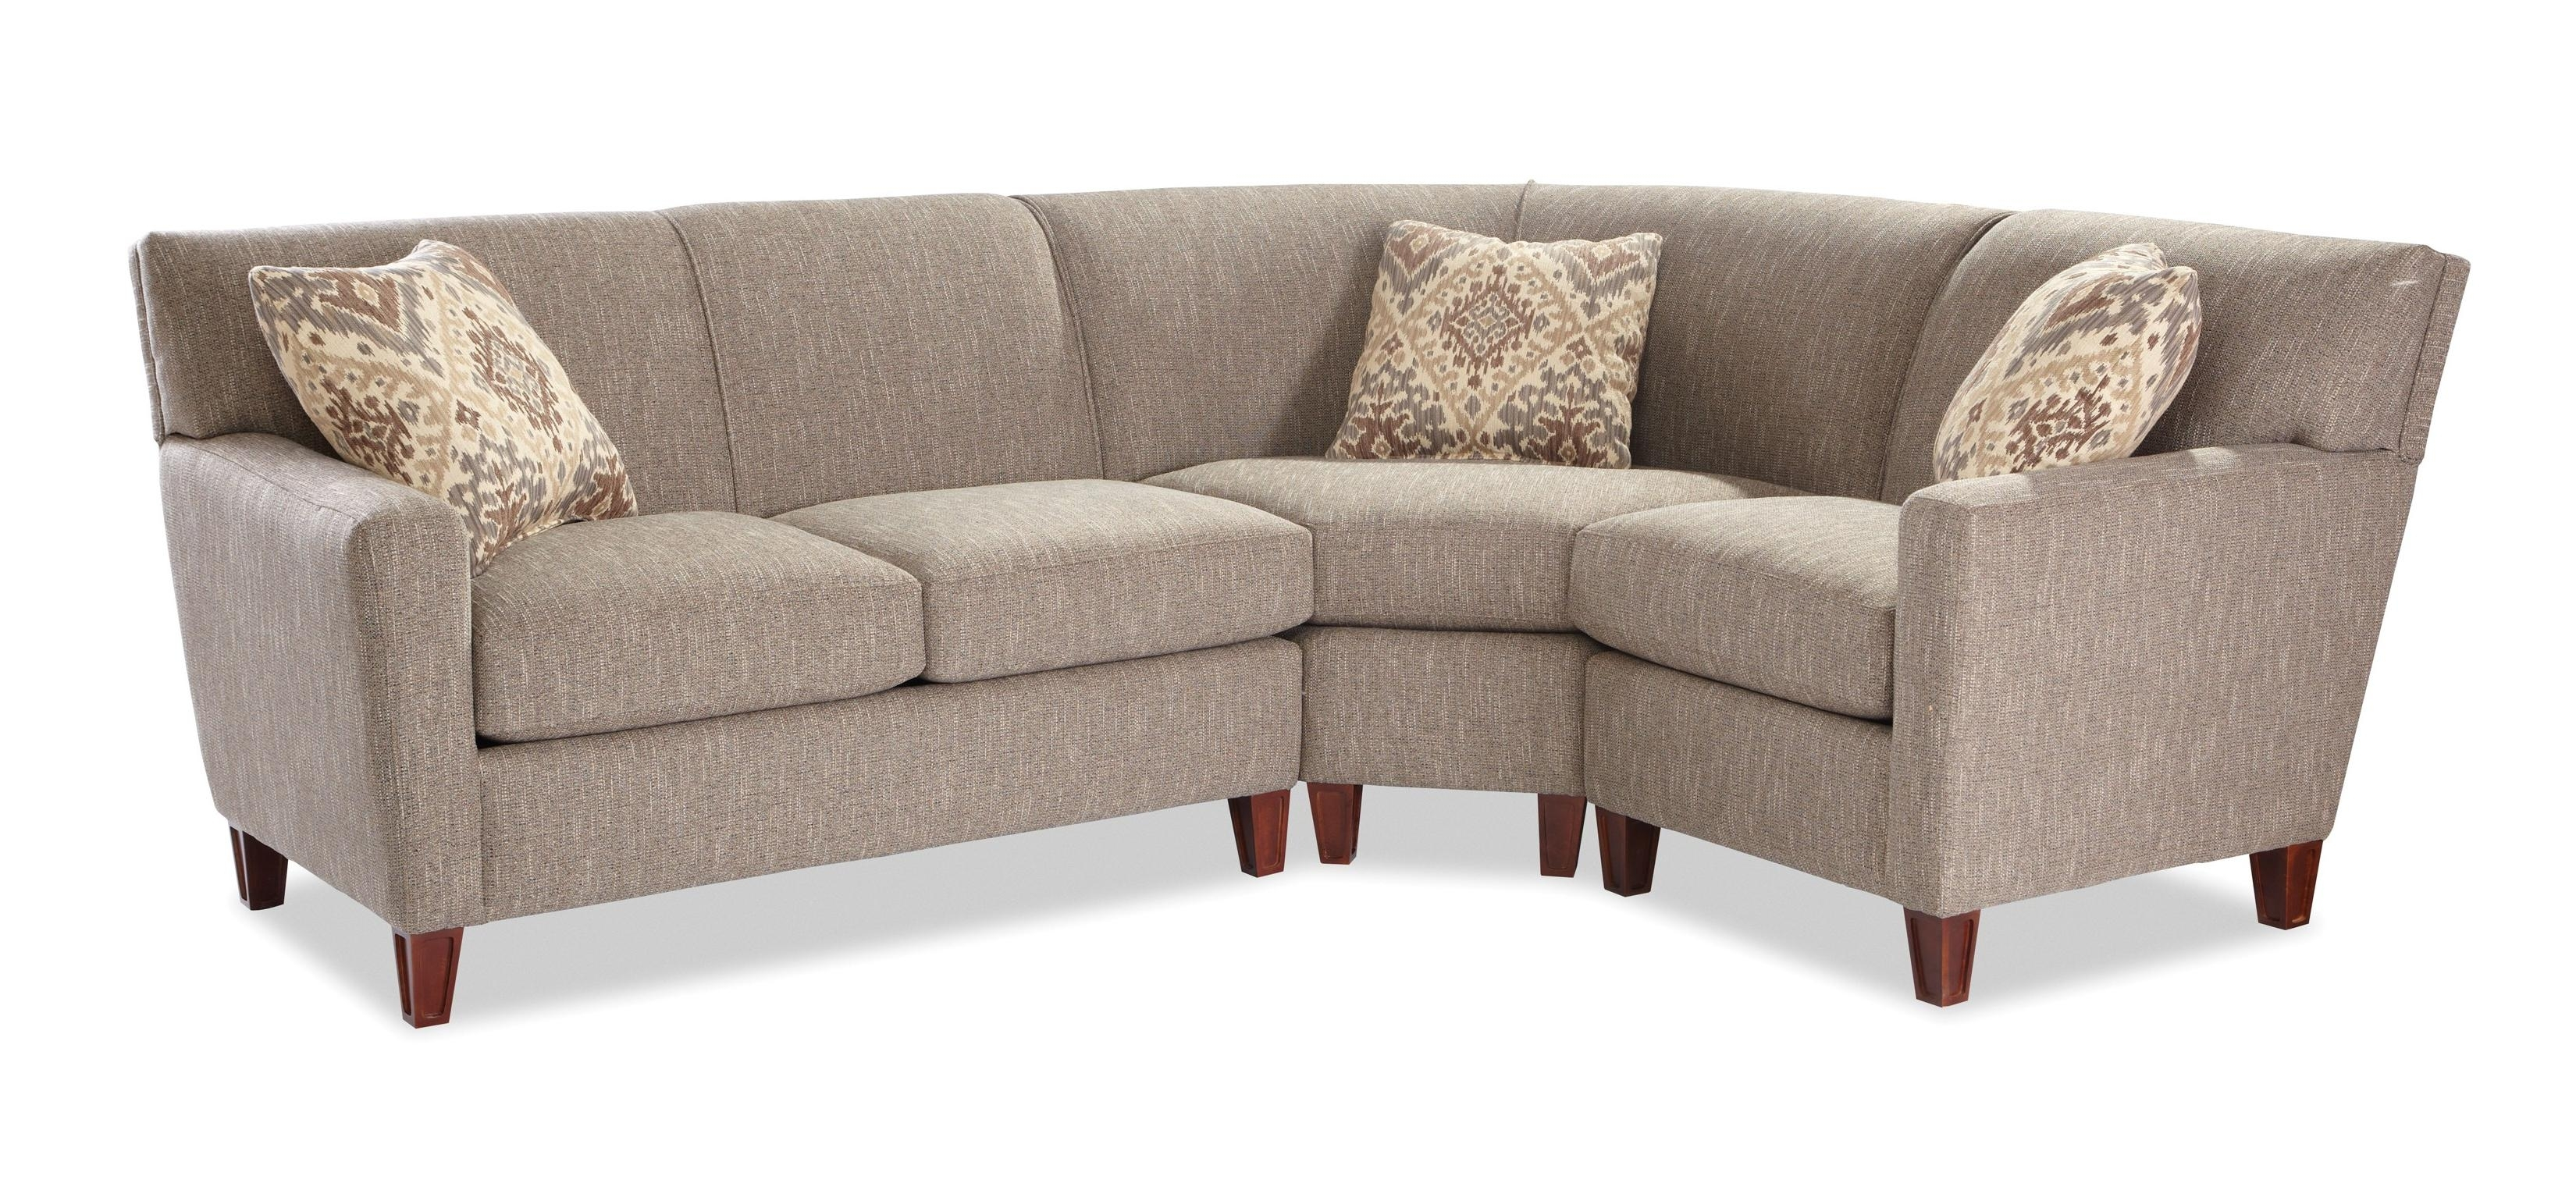 Craftmaster 7864 Three Piece Sectional Sofa With Laf Loveseat Throughout Blaine 3 Piece Sectionals (Image 8 of 25)